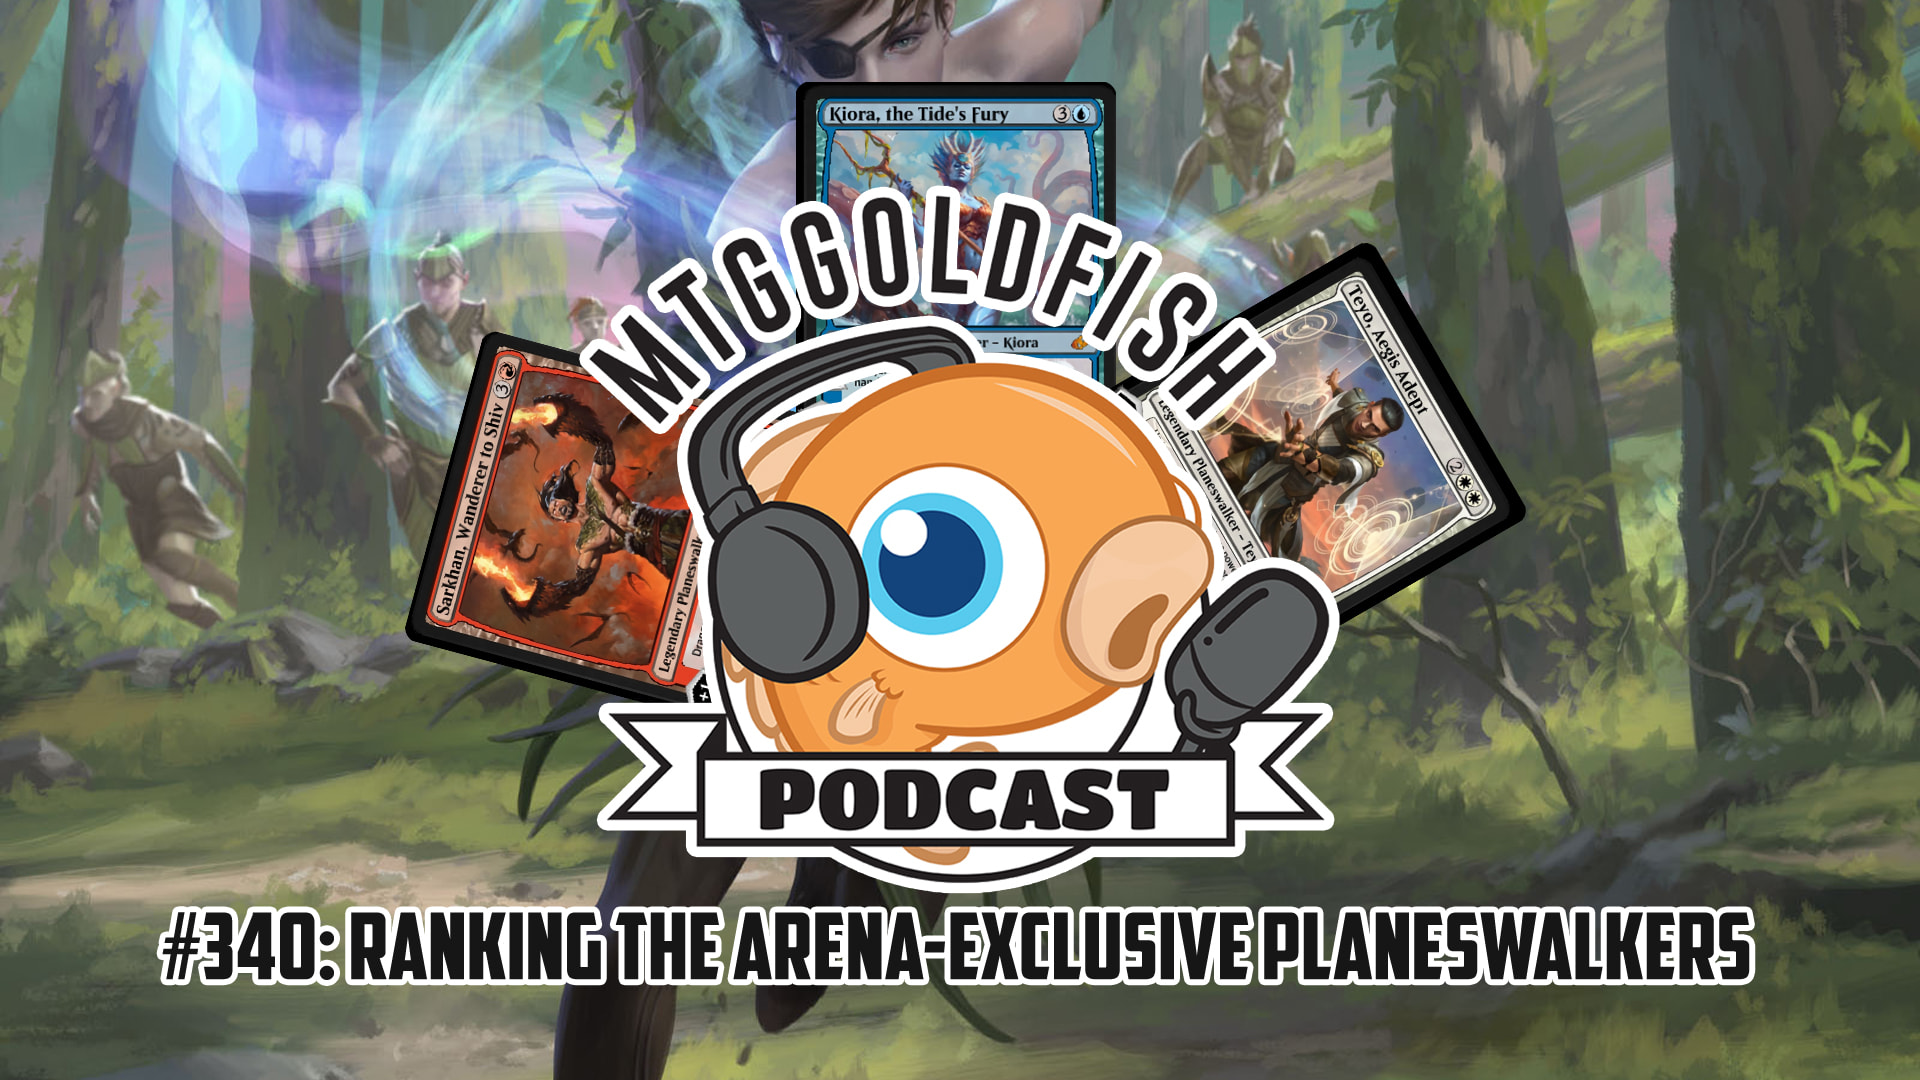 Image for Podcast 340: Ranking the Arena Exclusive Planeswalkers